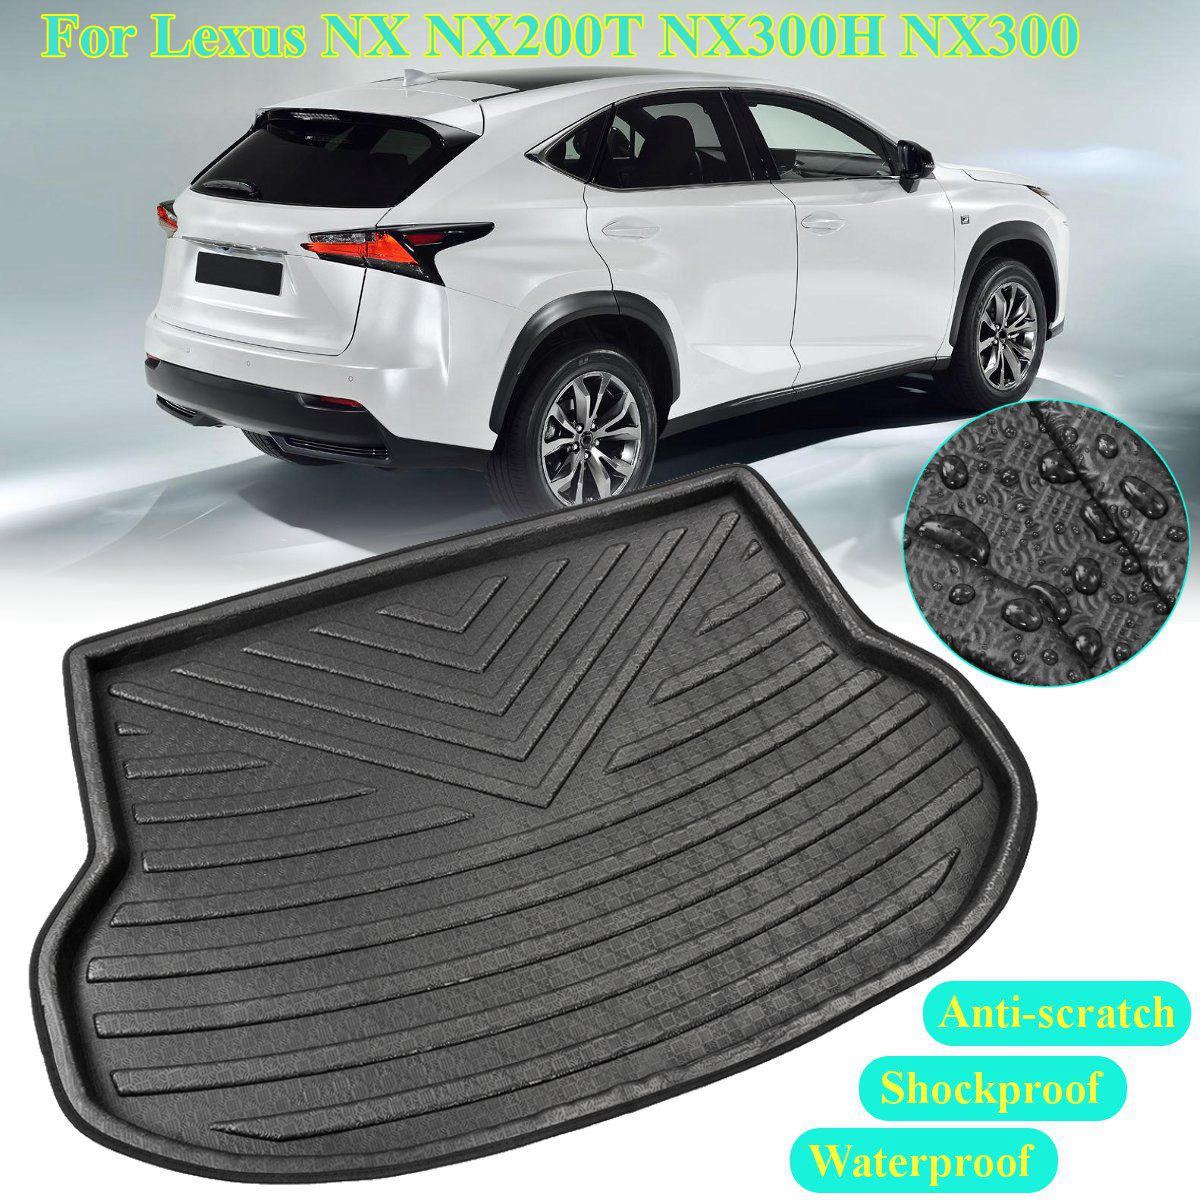 Accessories Cargo Boot Liner For Lexus NX NX200T NX300H NX300 2015 2016 2017 2018 Rear Trunk Mat Floor Tray Carpet Mud Kick Pad